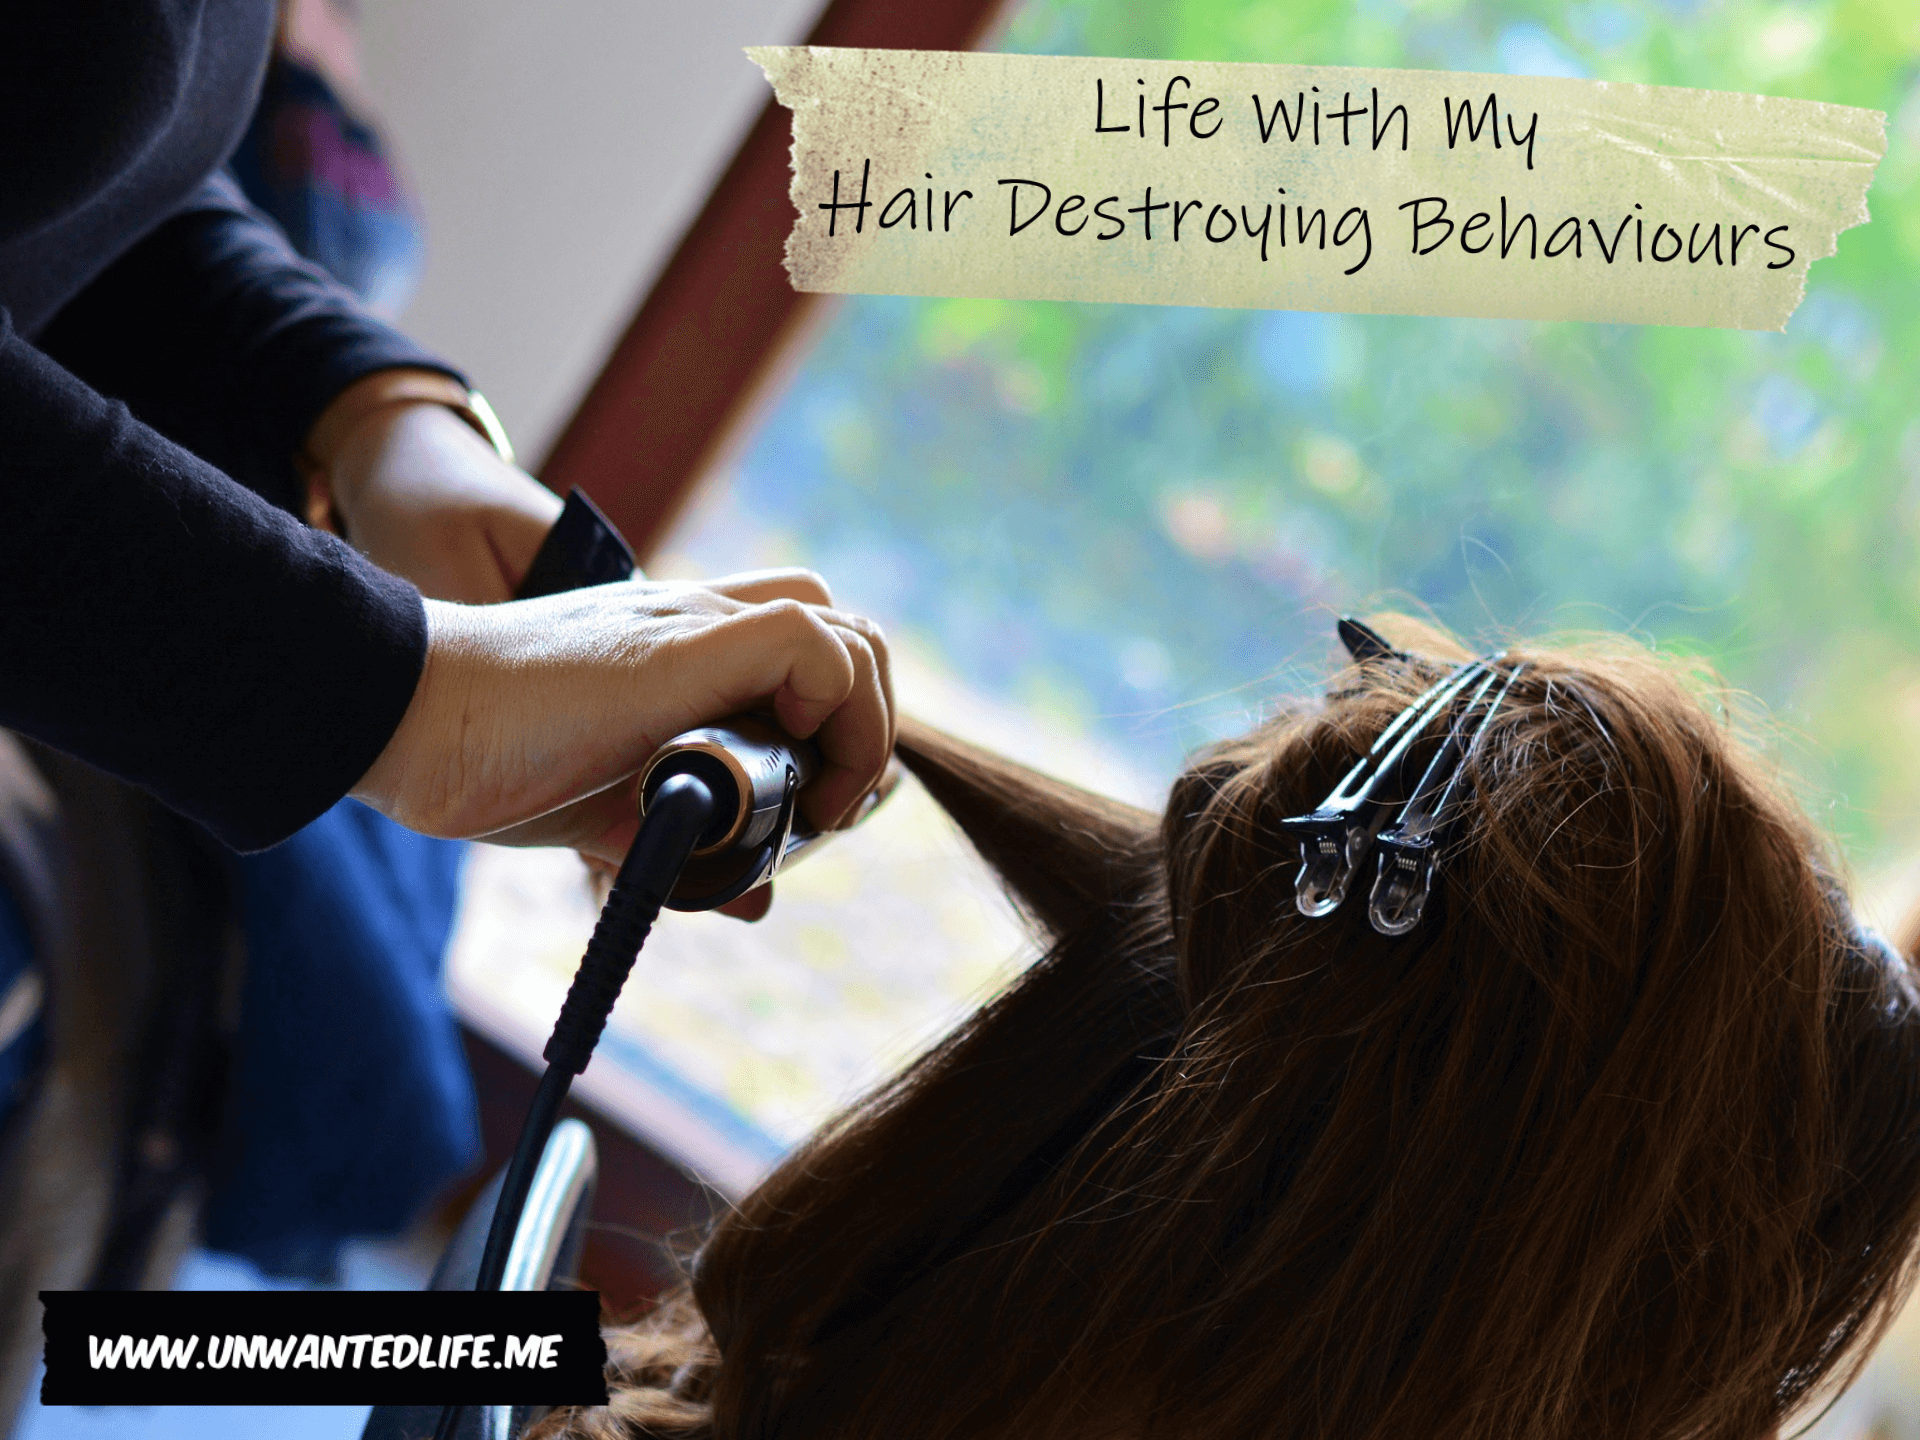 Life With My Hair Destroying Behaviours | Mental Health, Wellness, and Alopecia | Unwanted Life